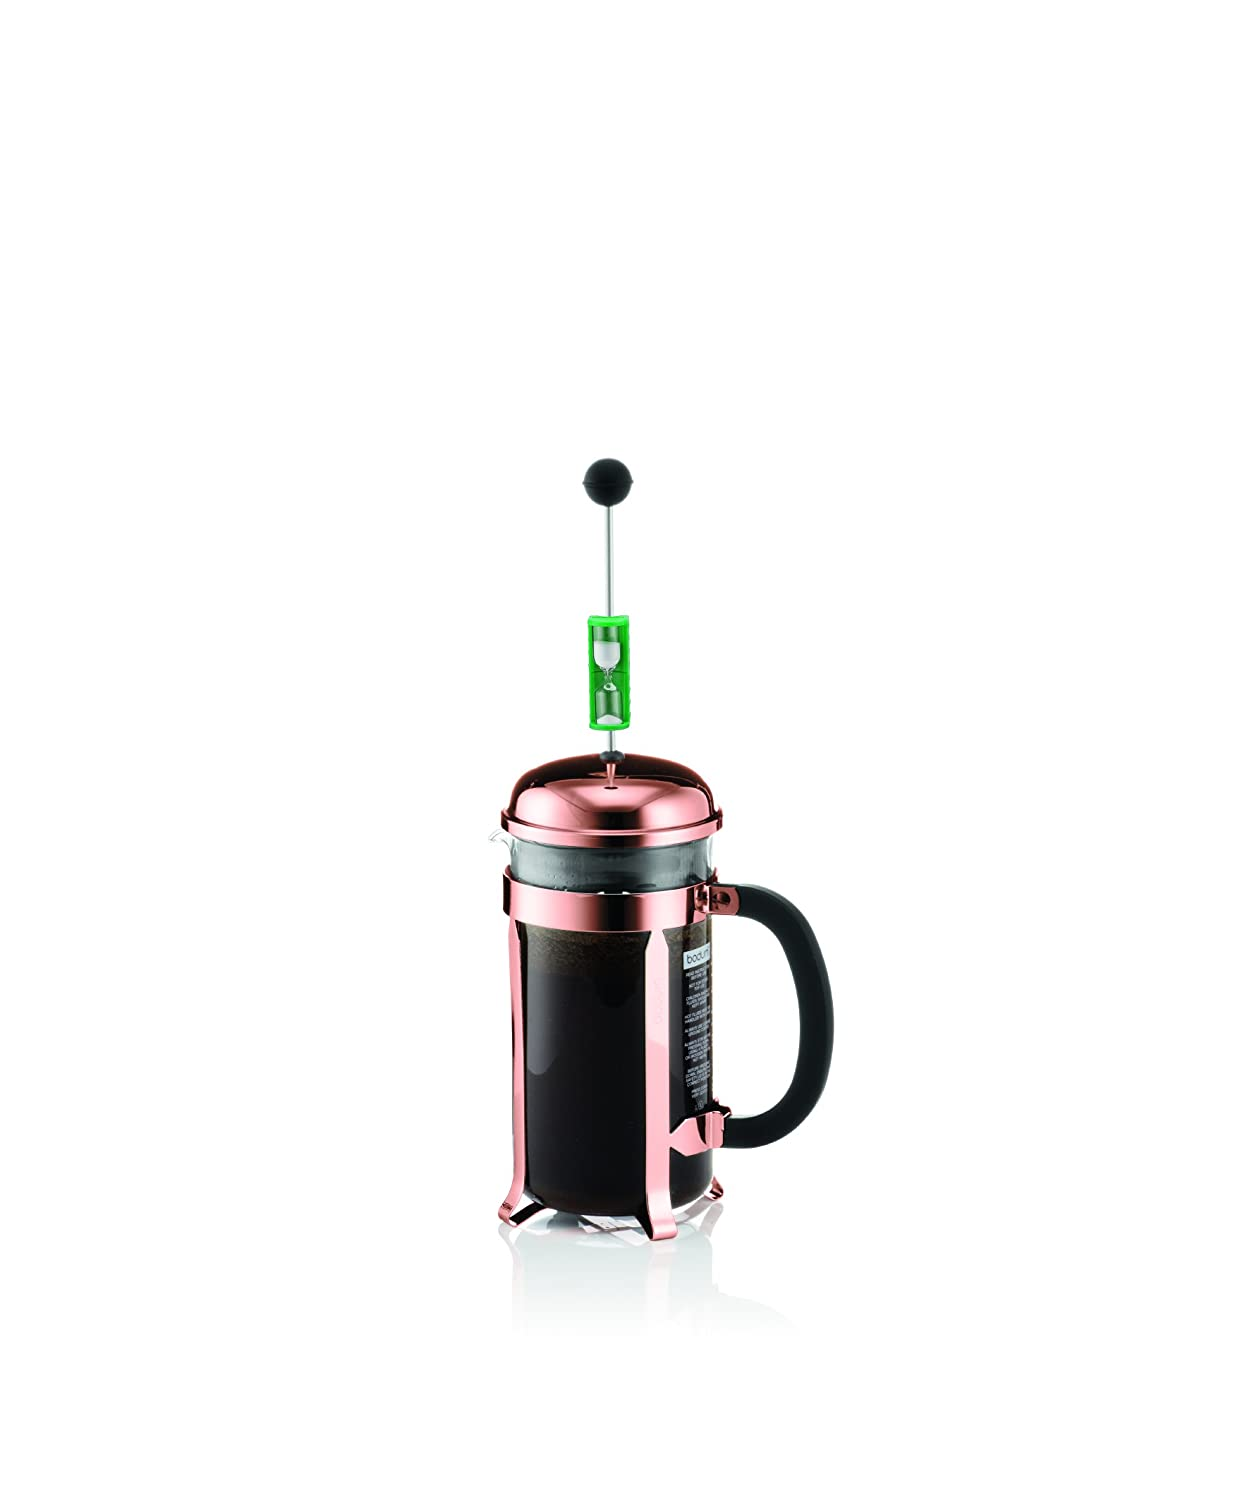 Bed bath beyond french press - Amazon Com Bodum Chambord Coffee Maker French Press Coffee Maker Copper 34 Ounce Kitchen Dining